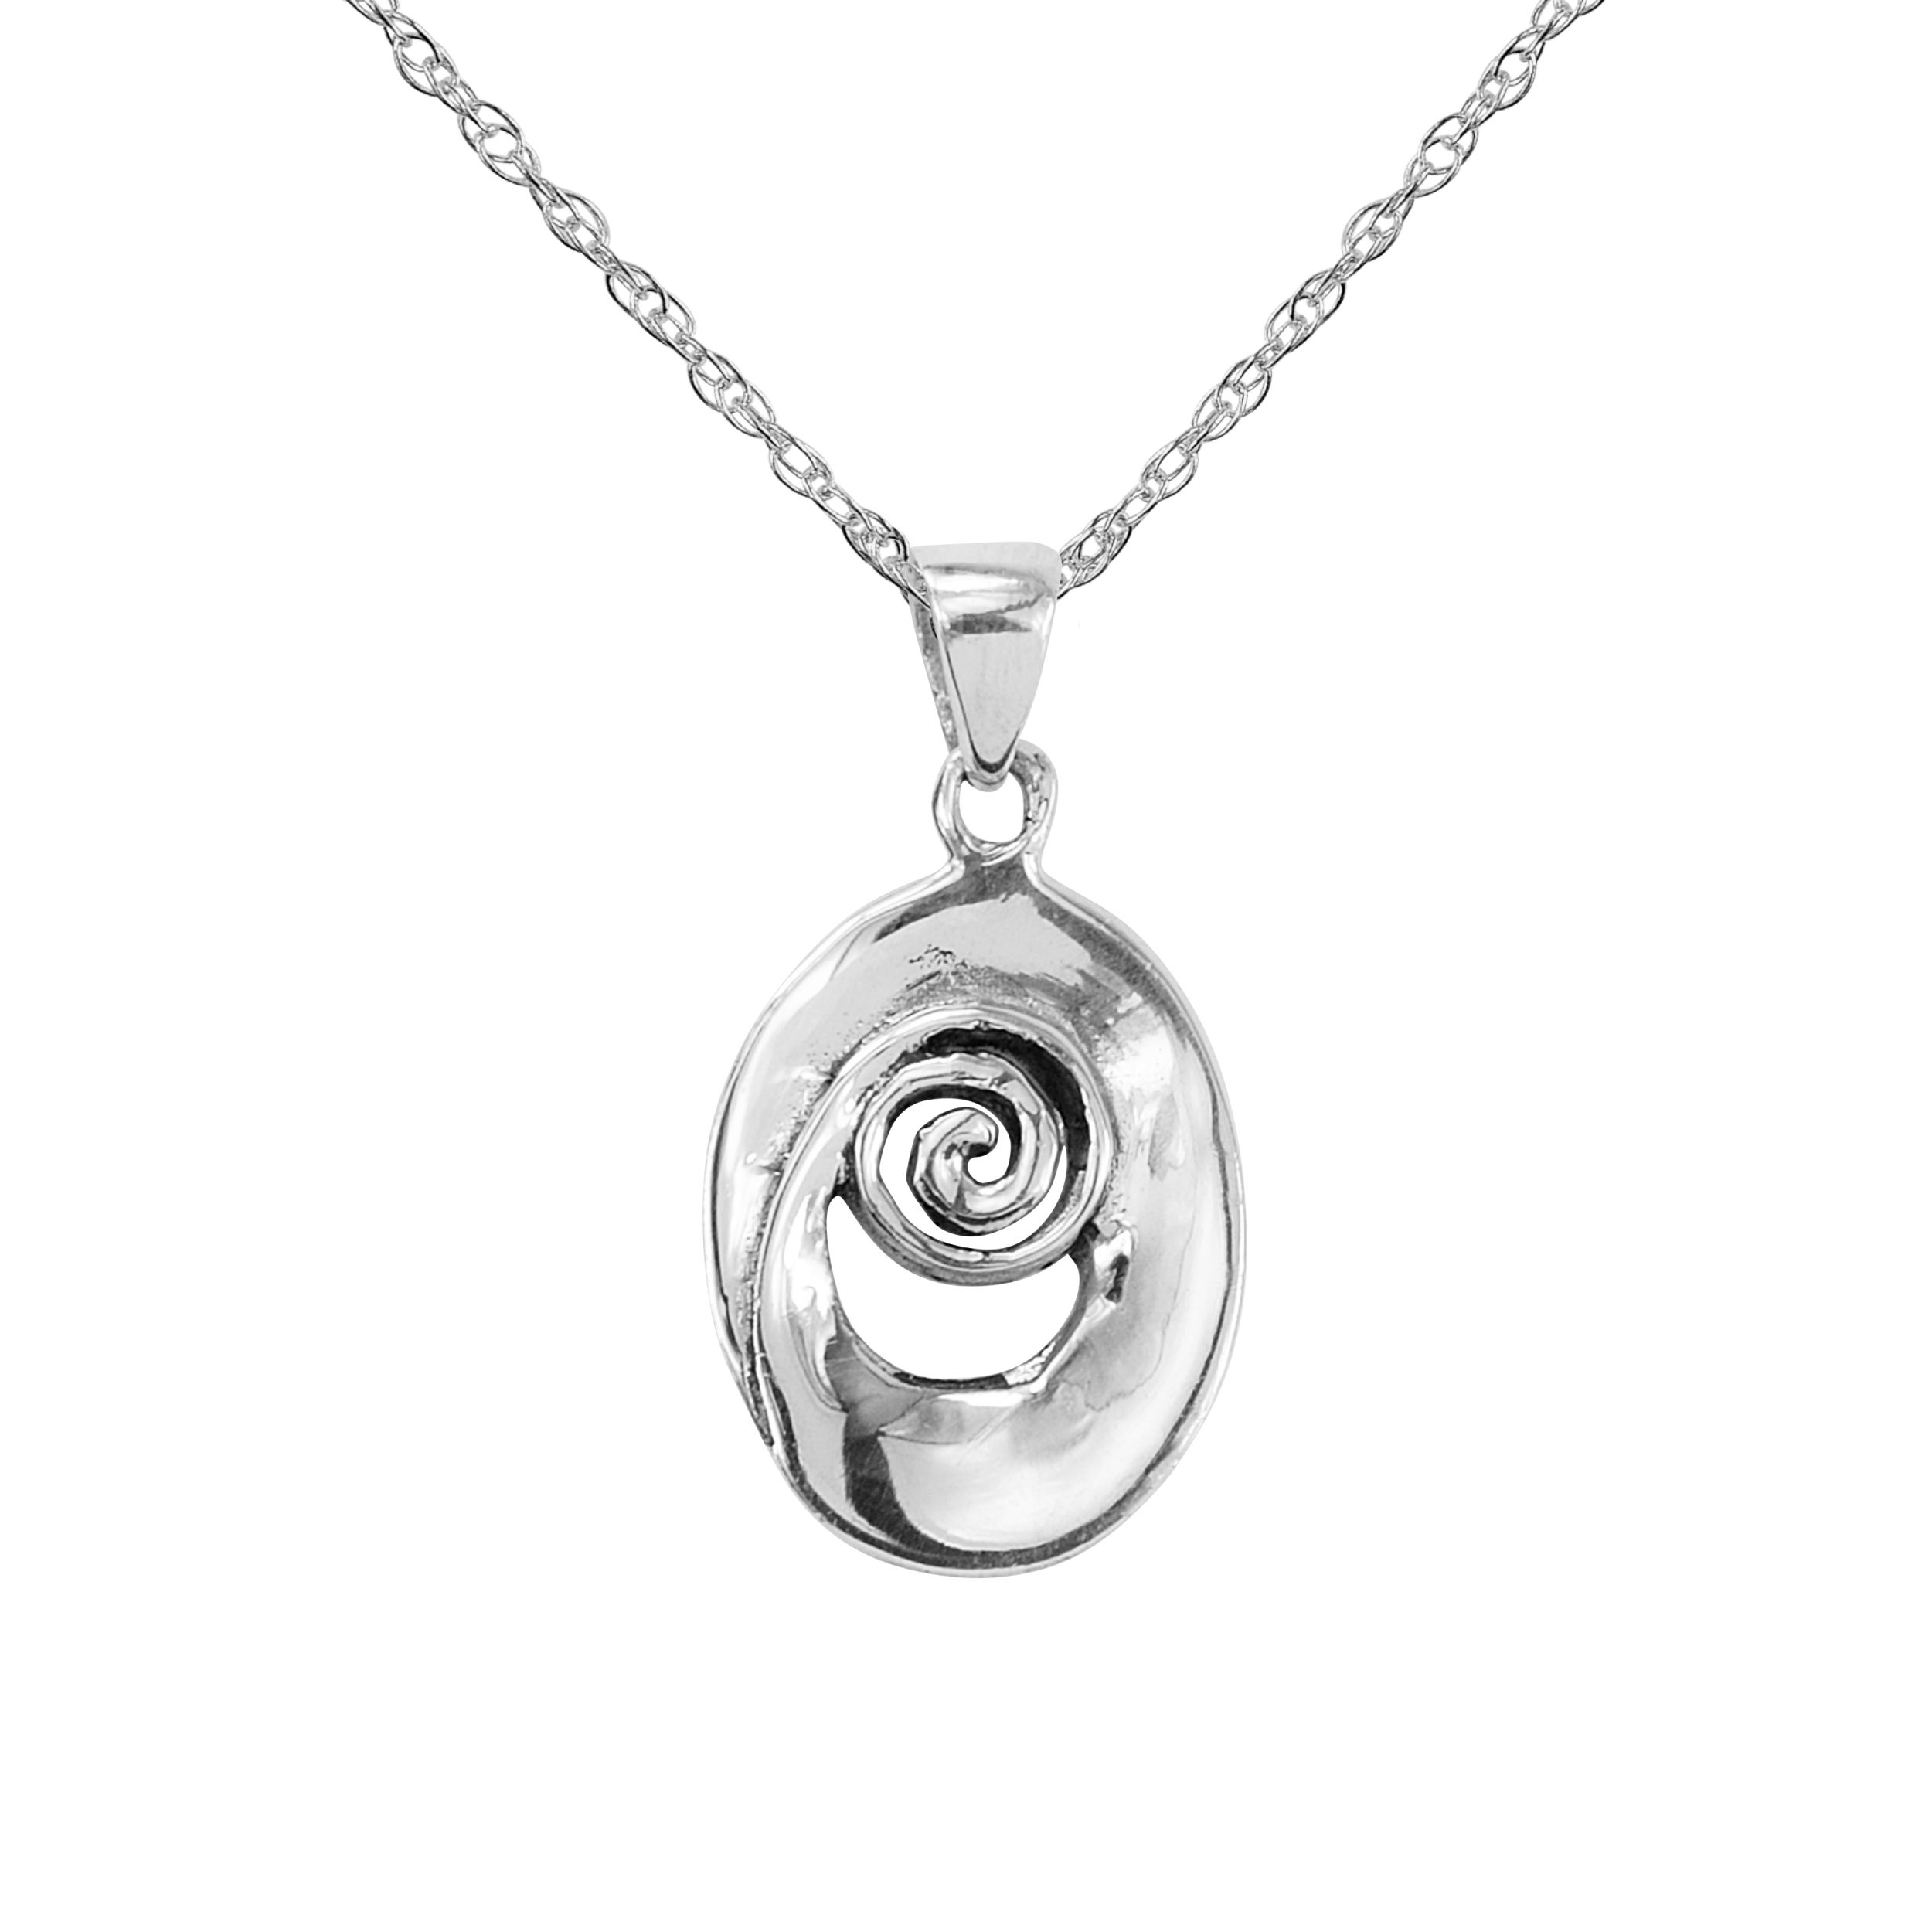 crystalspiral crystal necklace pendant spiral polished